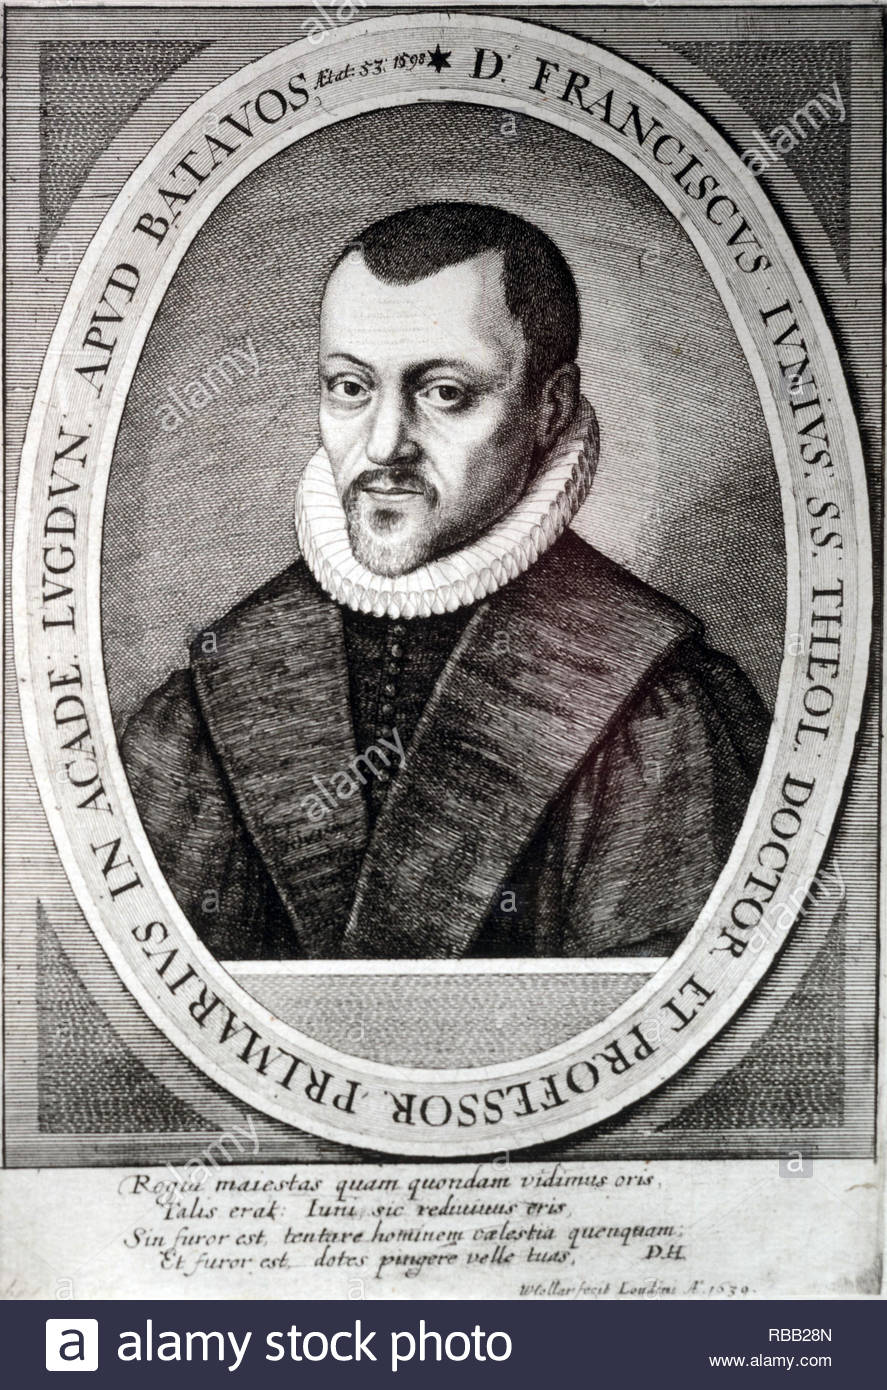 Franciscus Junius the Elder (born François du Jon, 1 May 1545 – 13 October 1602) was a Reformed scholar, Protestant reformer and theologian, etching by Bohemian etcher Wenceslaus Hollar from 1639 - Stock Image